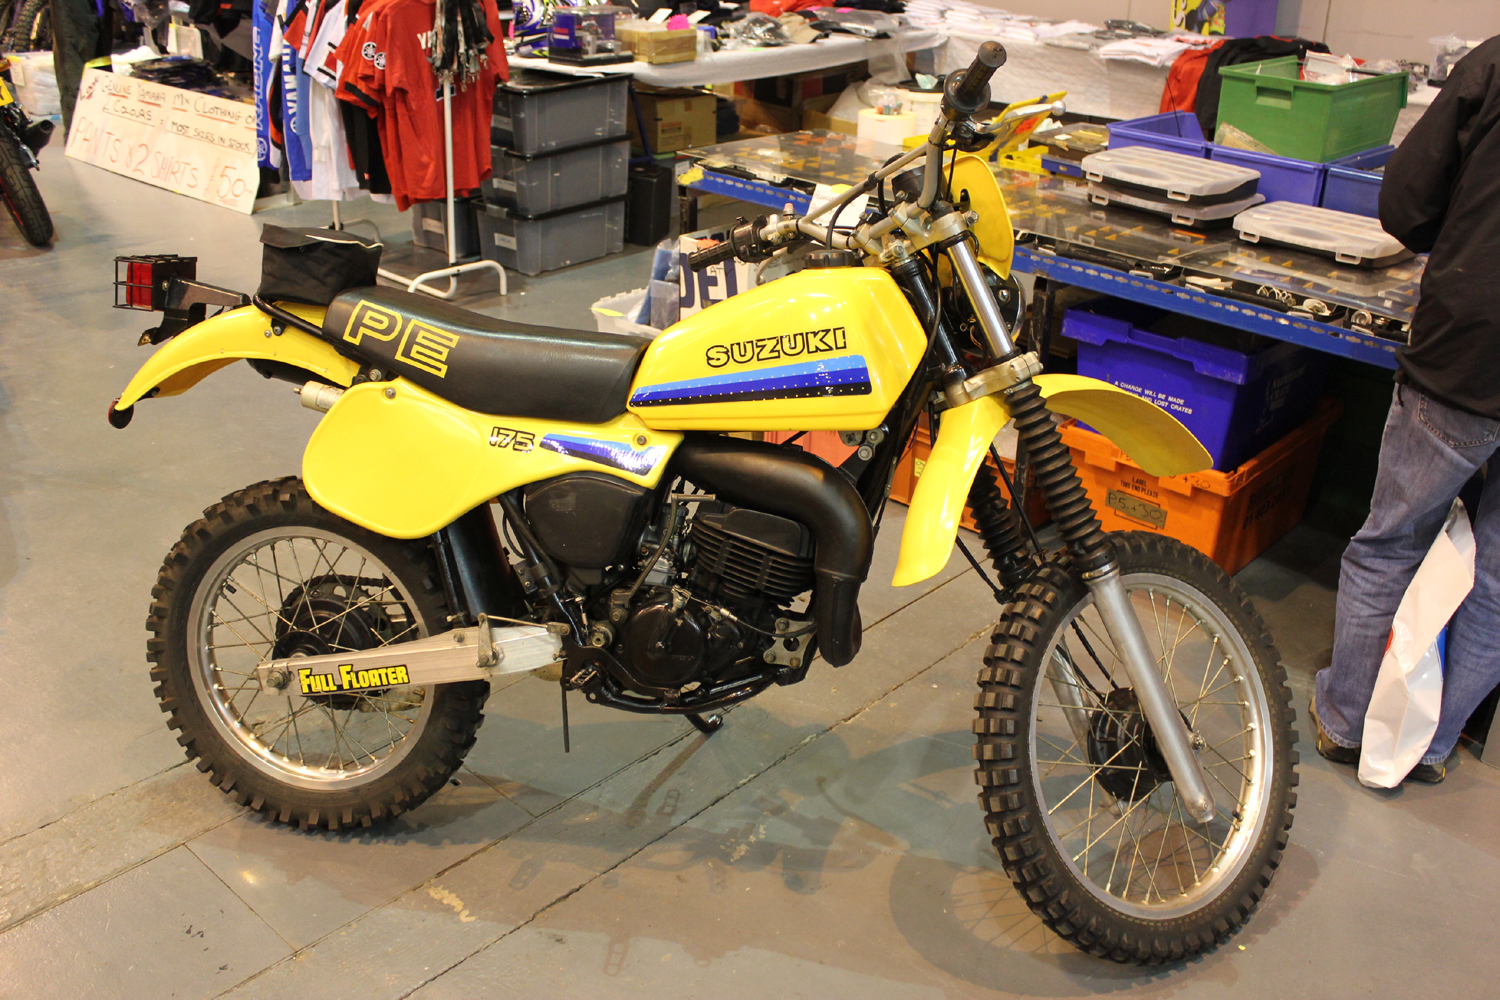 classicdirtbikerider.com-photo by Mr J-2015 Telford classic dirt bike show-SUZUKI PE175 FULL-FLOATER ENDURO